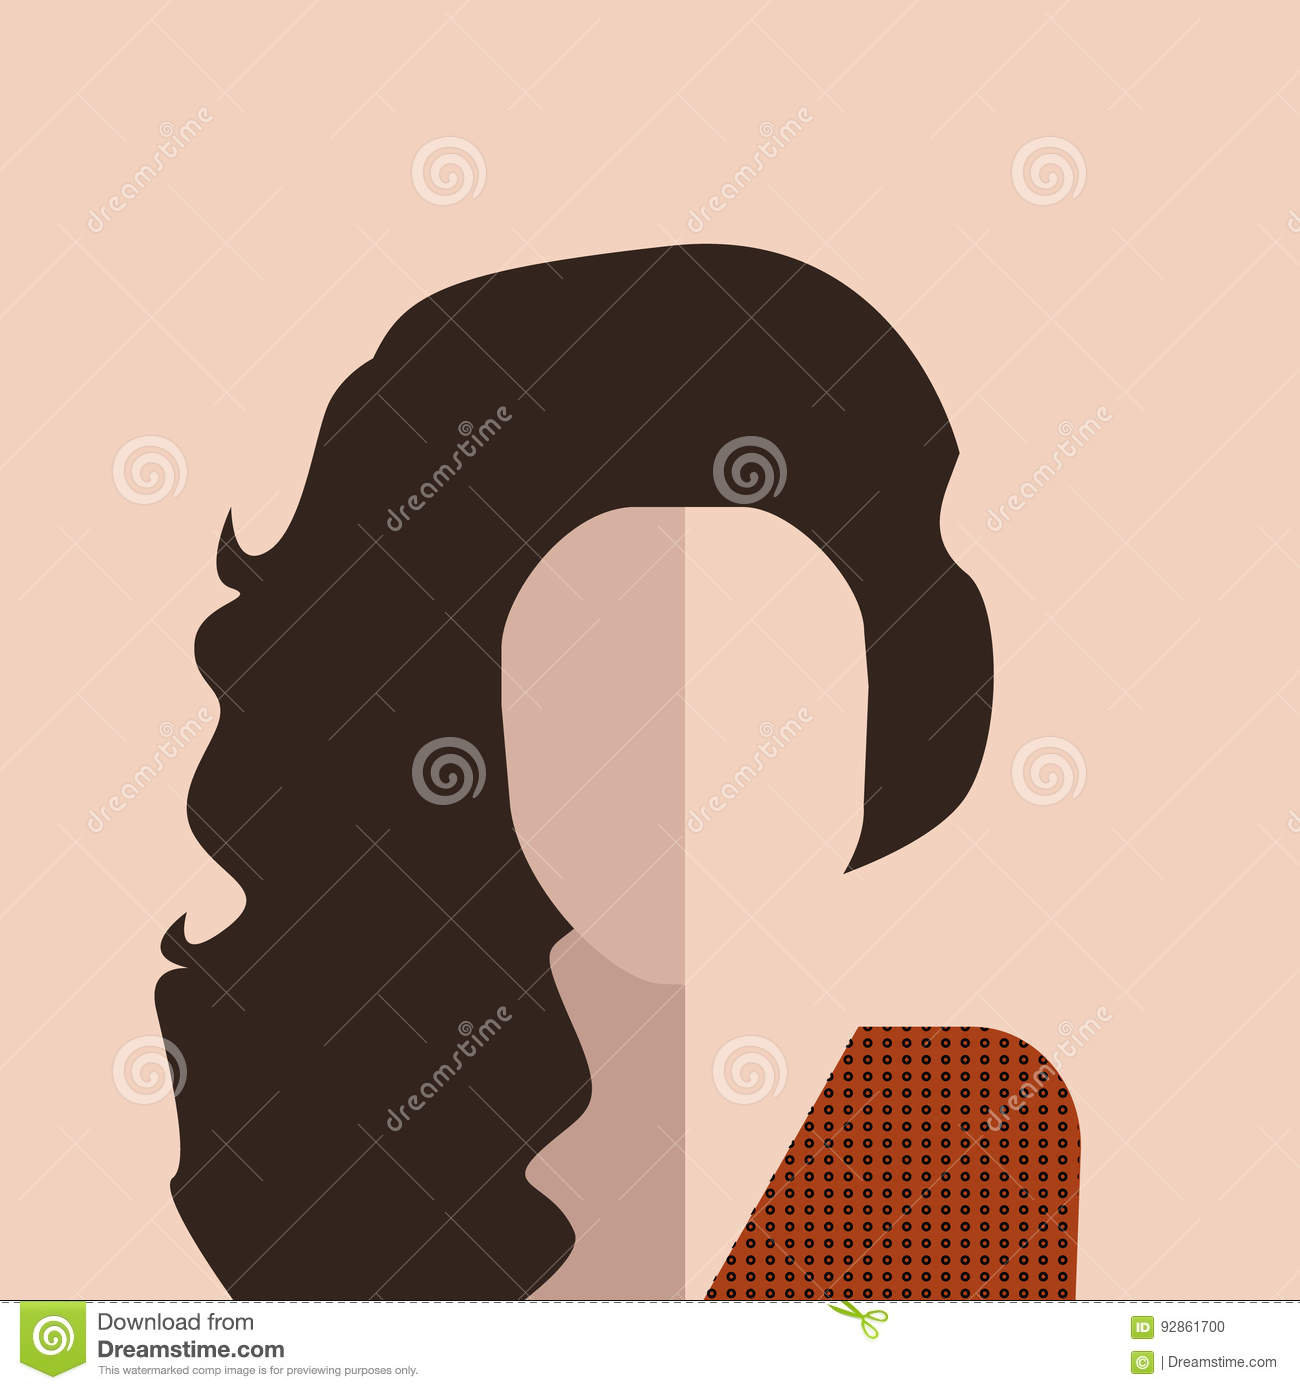 Haircut cartoons illustrations vector stock images for Abstract beauty salon